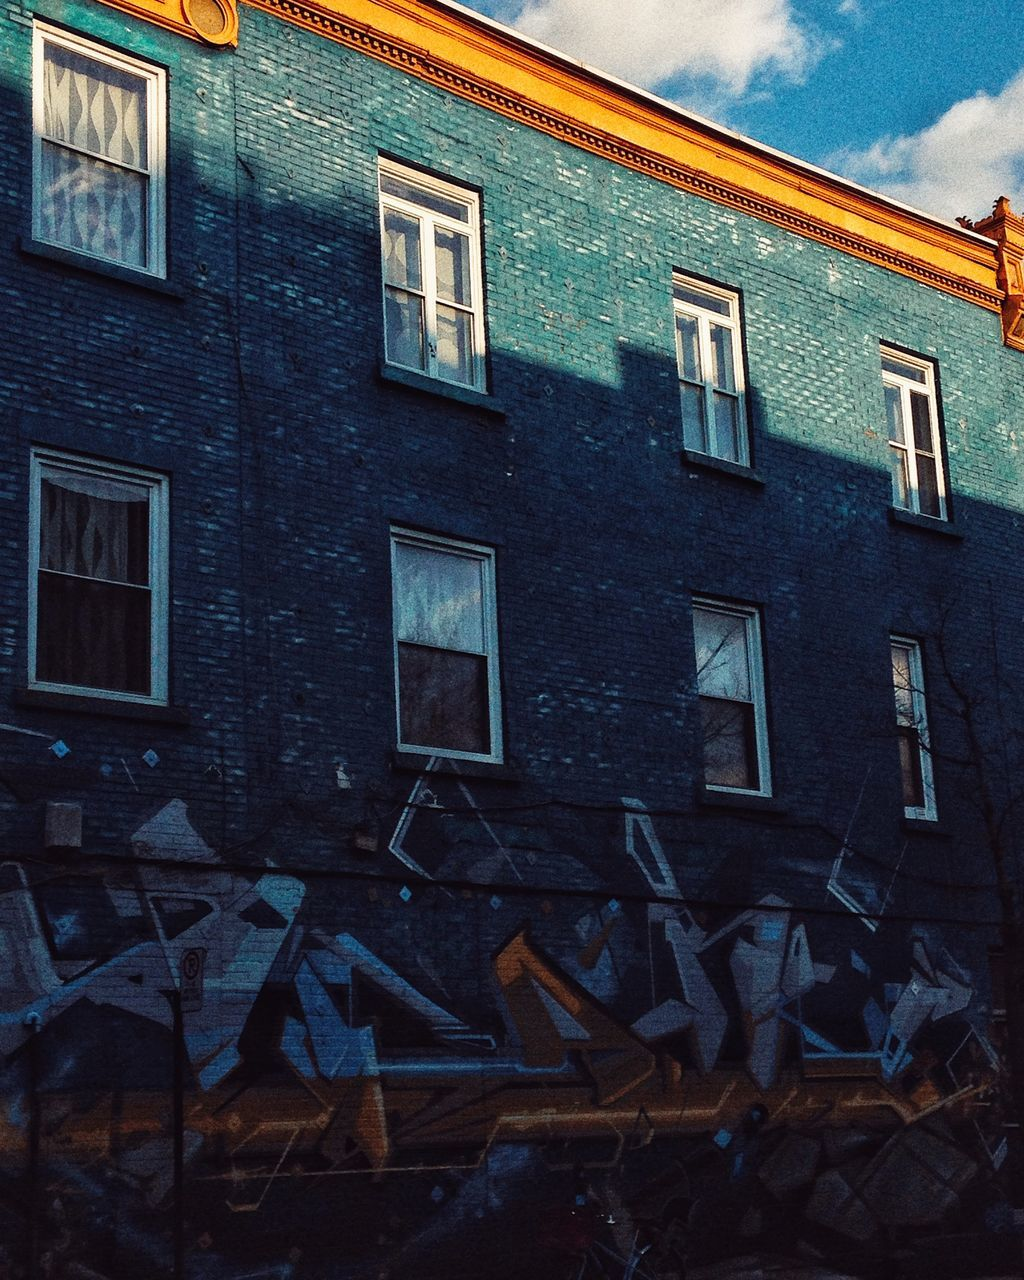 window, building exterior, architecture, house, built structure, no people, outdoors, day, sky